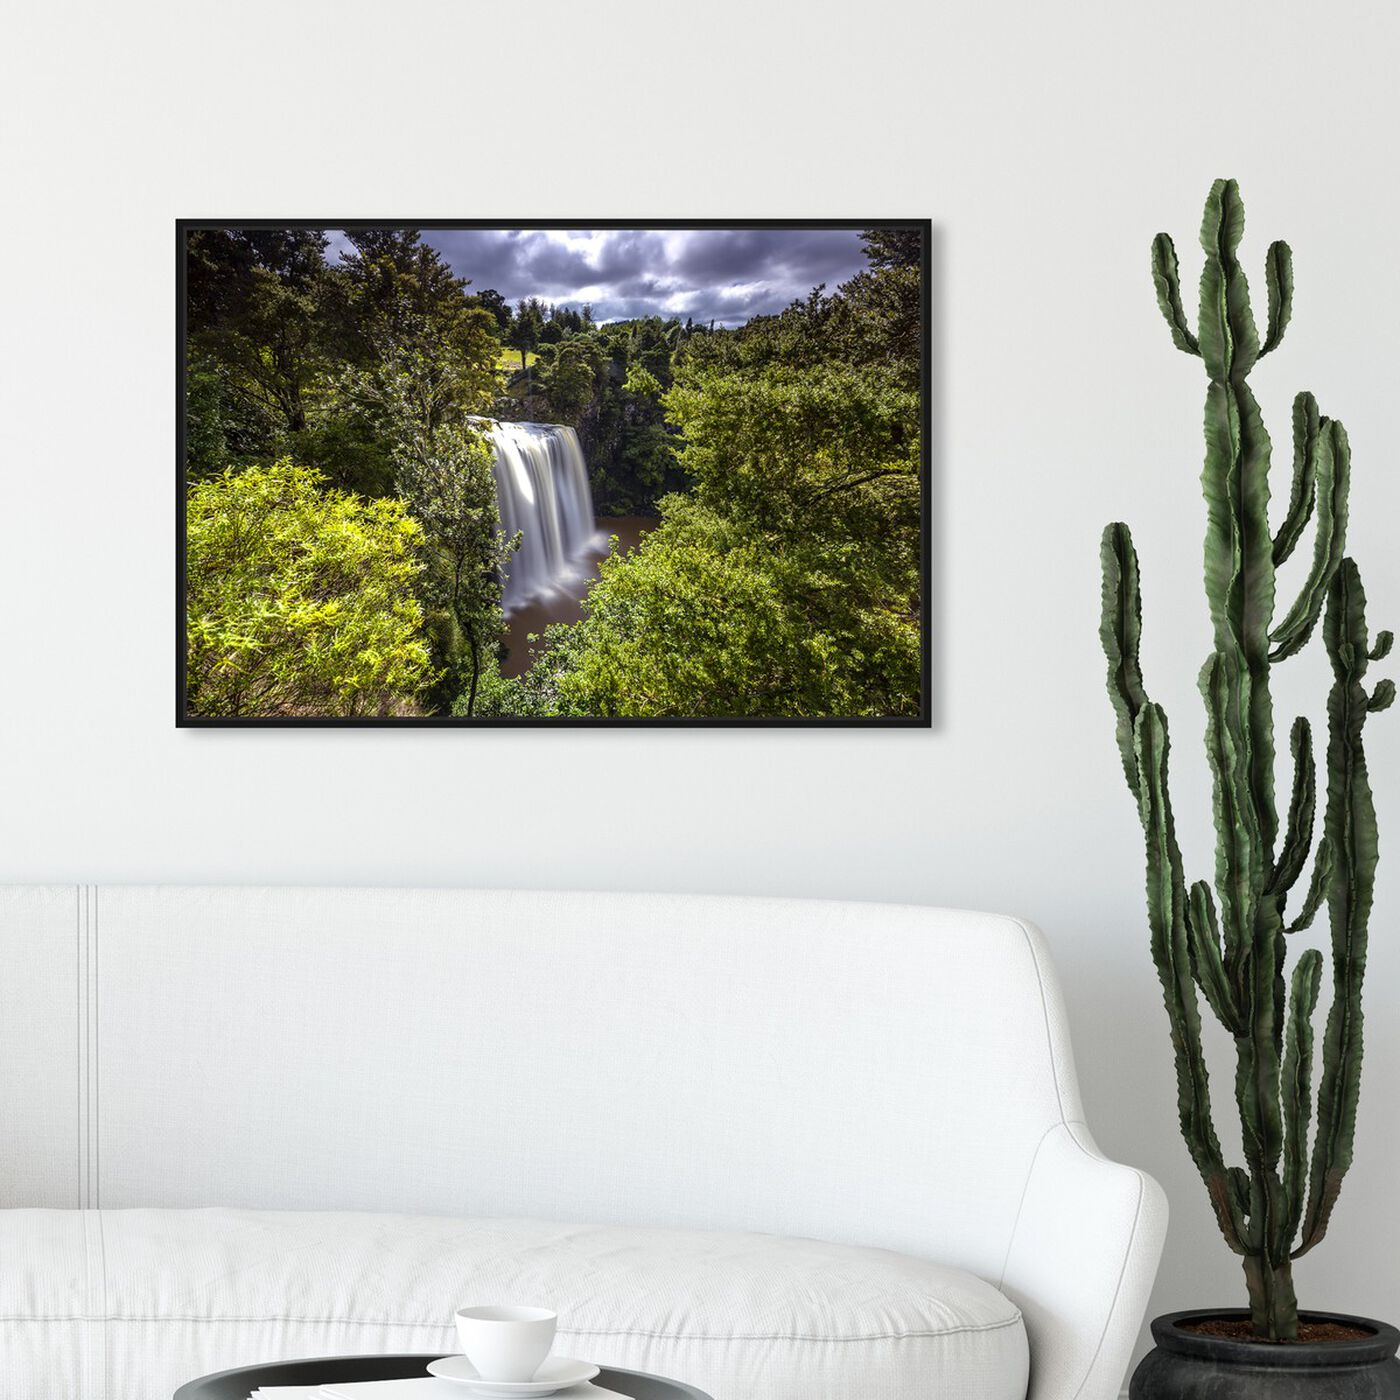 Hanging view of Curro Cardenal - Rainforest IV featuring nature and landscape and nature art.